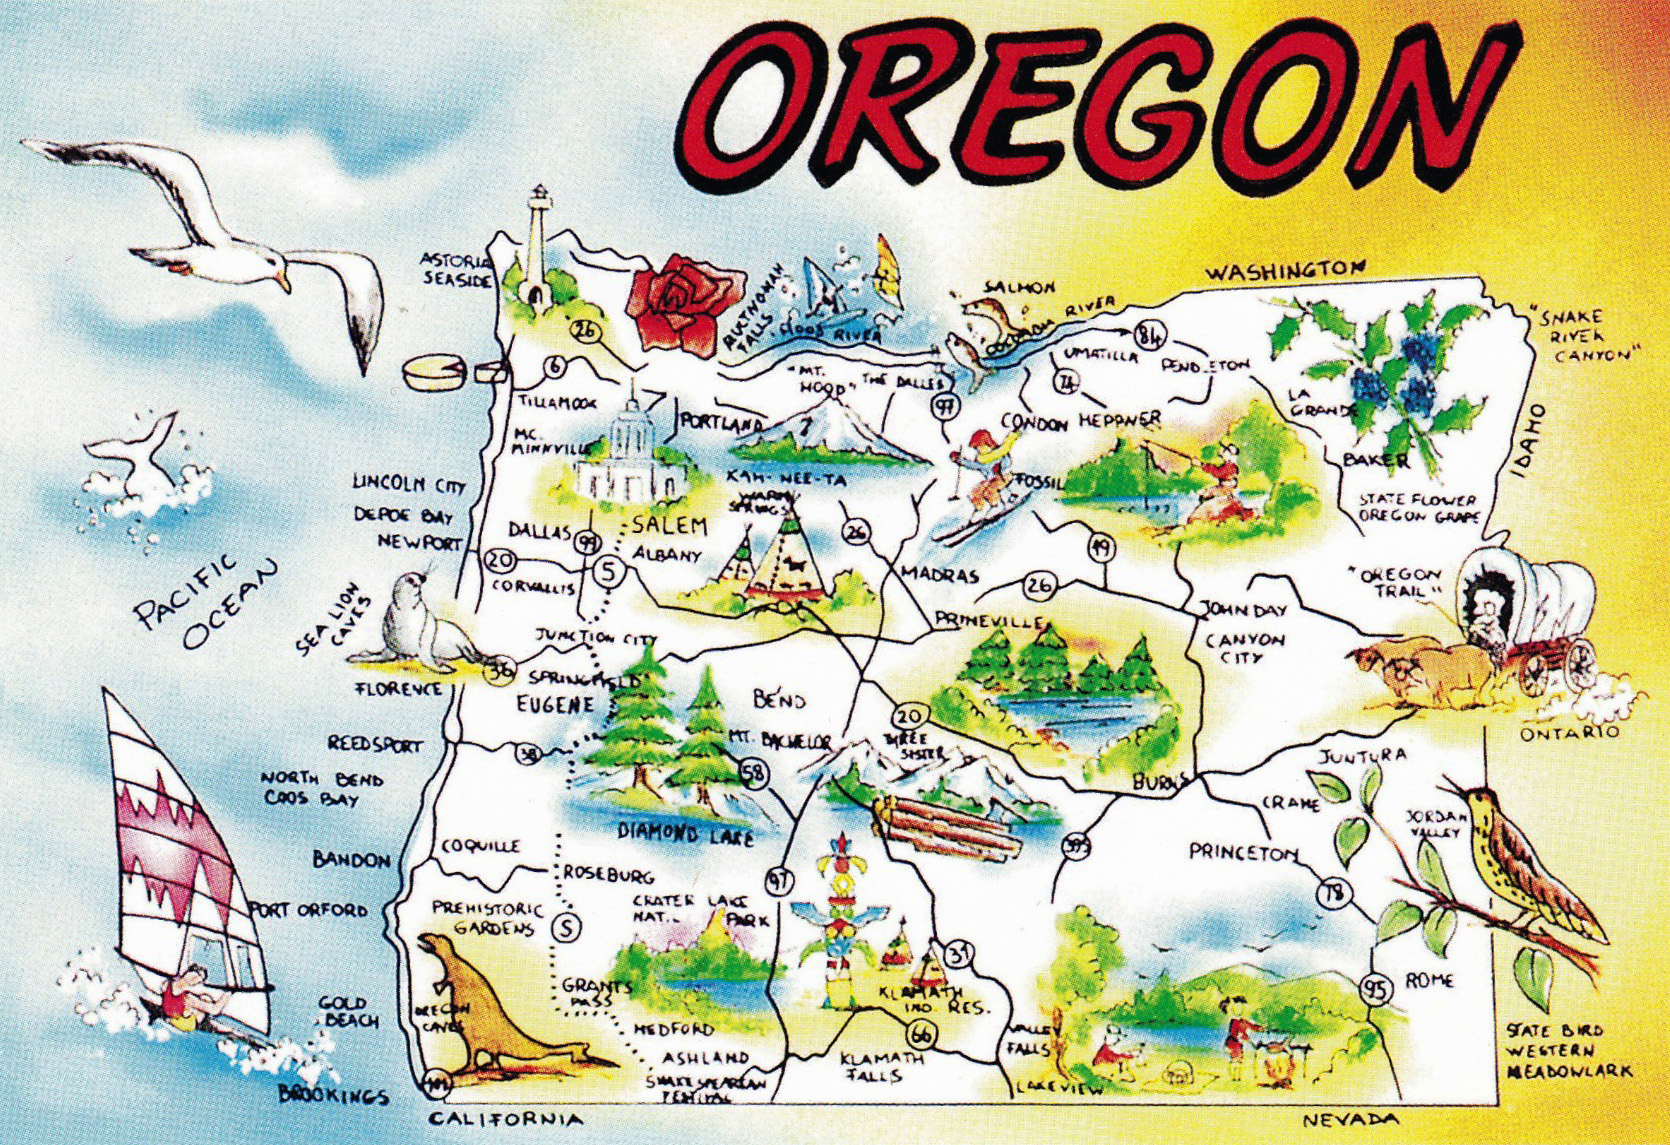 Large Tourist Illustrated Map Of Oregon State Oregon State USA - Map of oregon